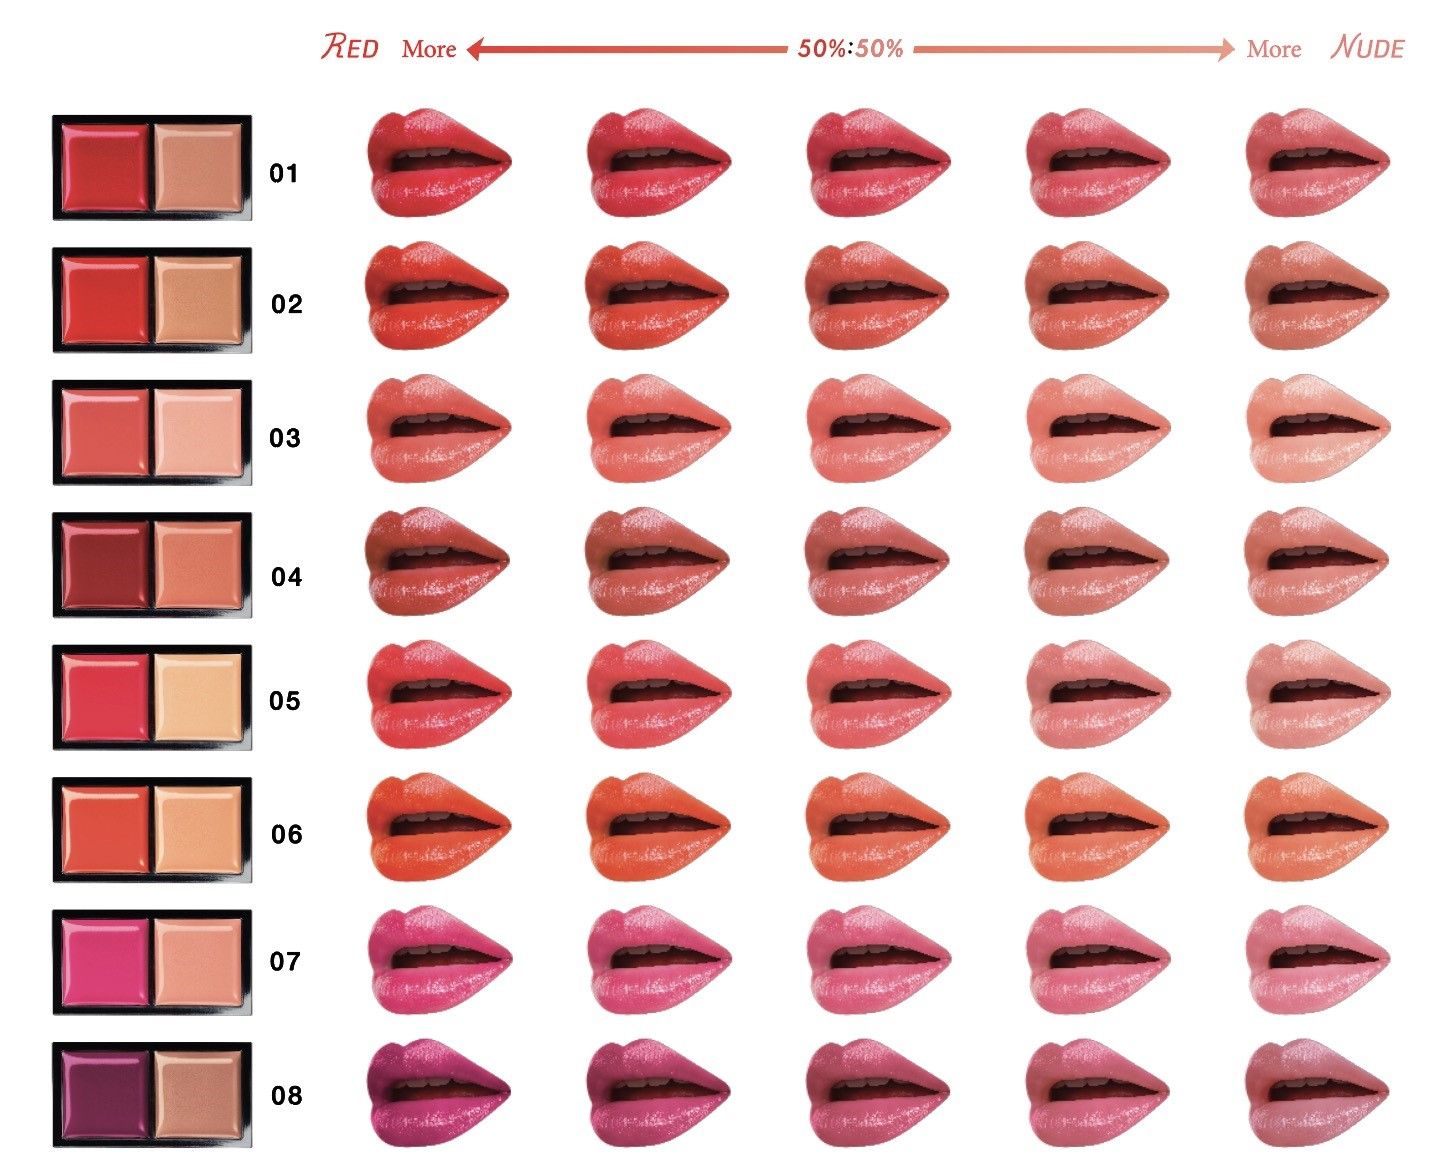 Kate Tokyo Red Nude Rouge Colour Intensity Chart